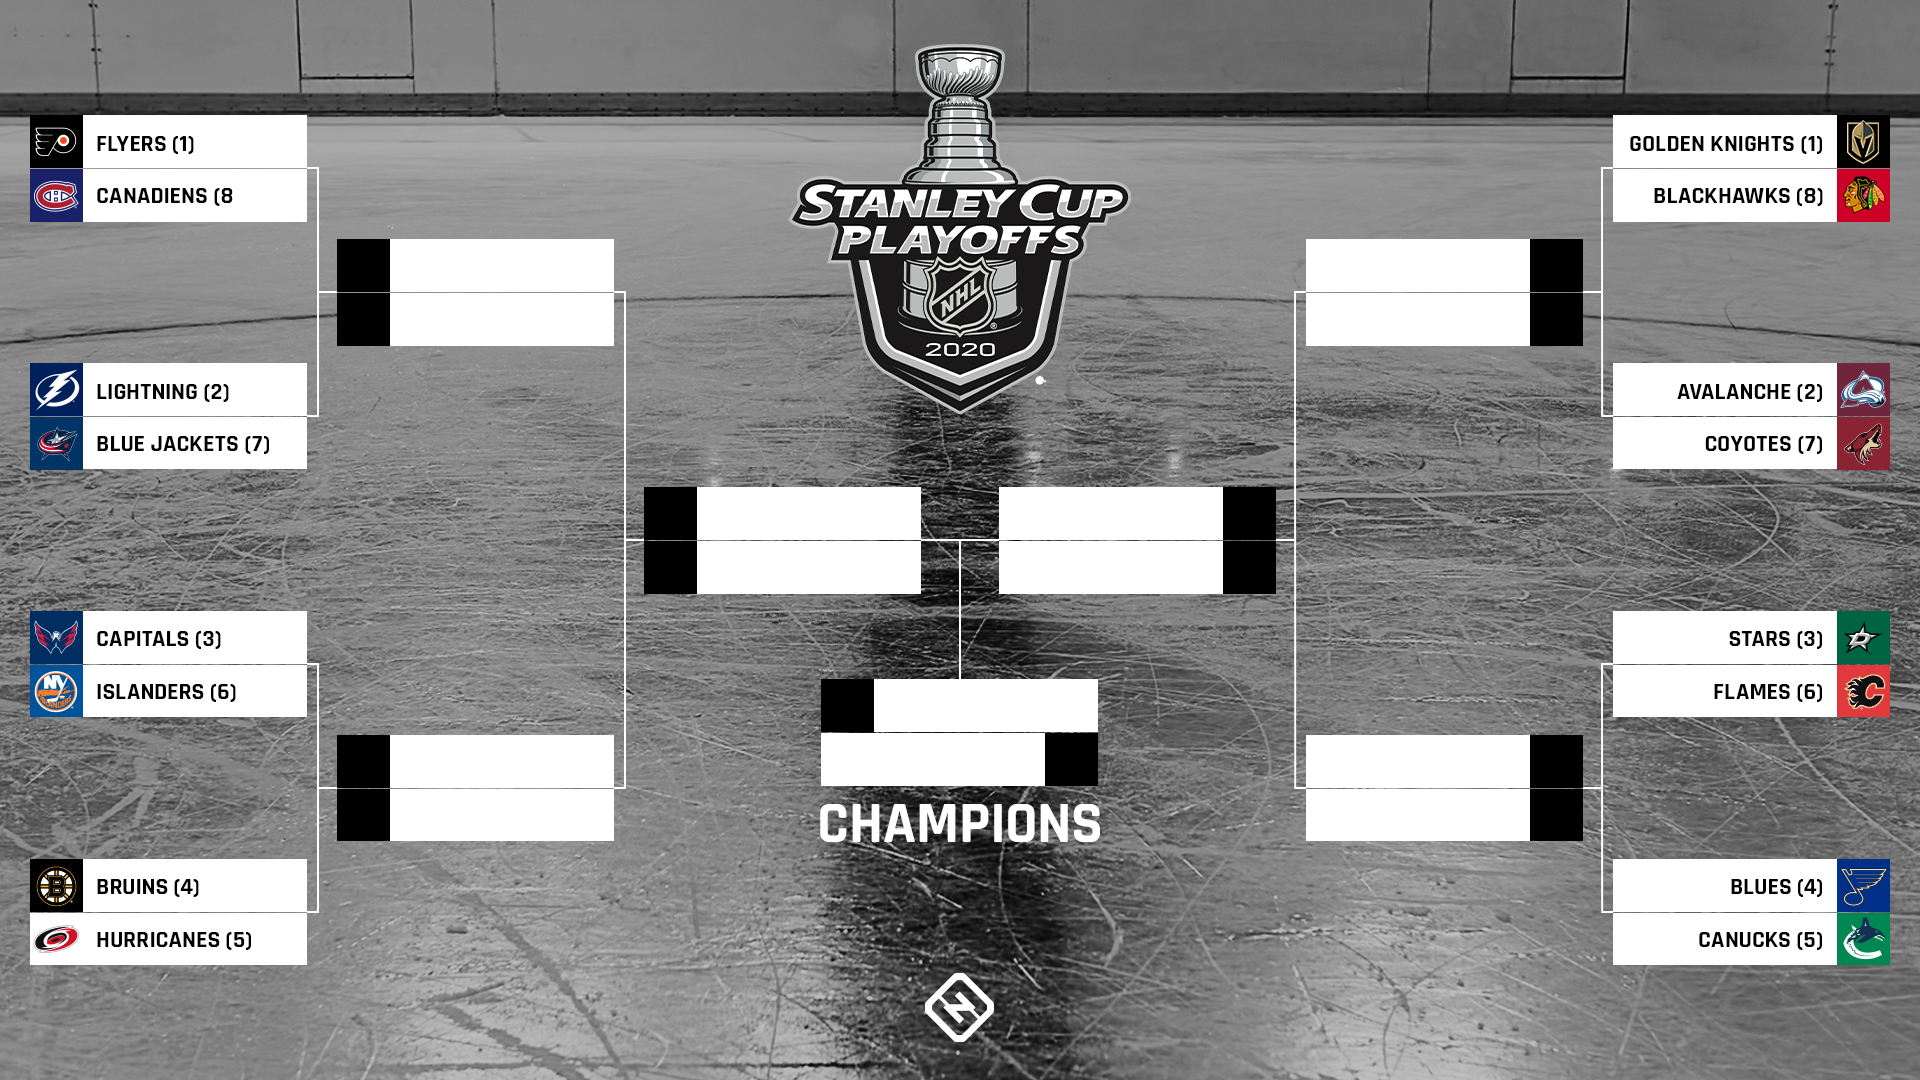 NHL playoff bracket predictions, picks, odds series breakdowns for 2020 Stanley Cup second round